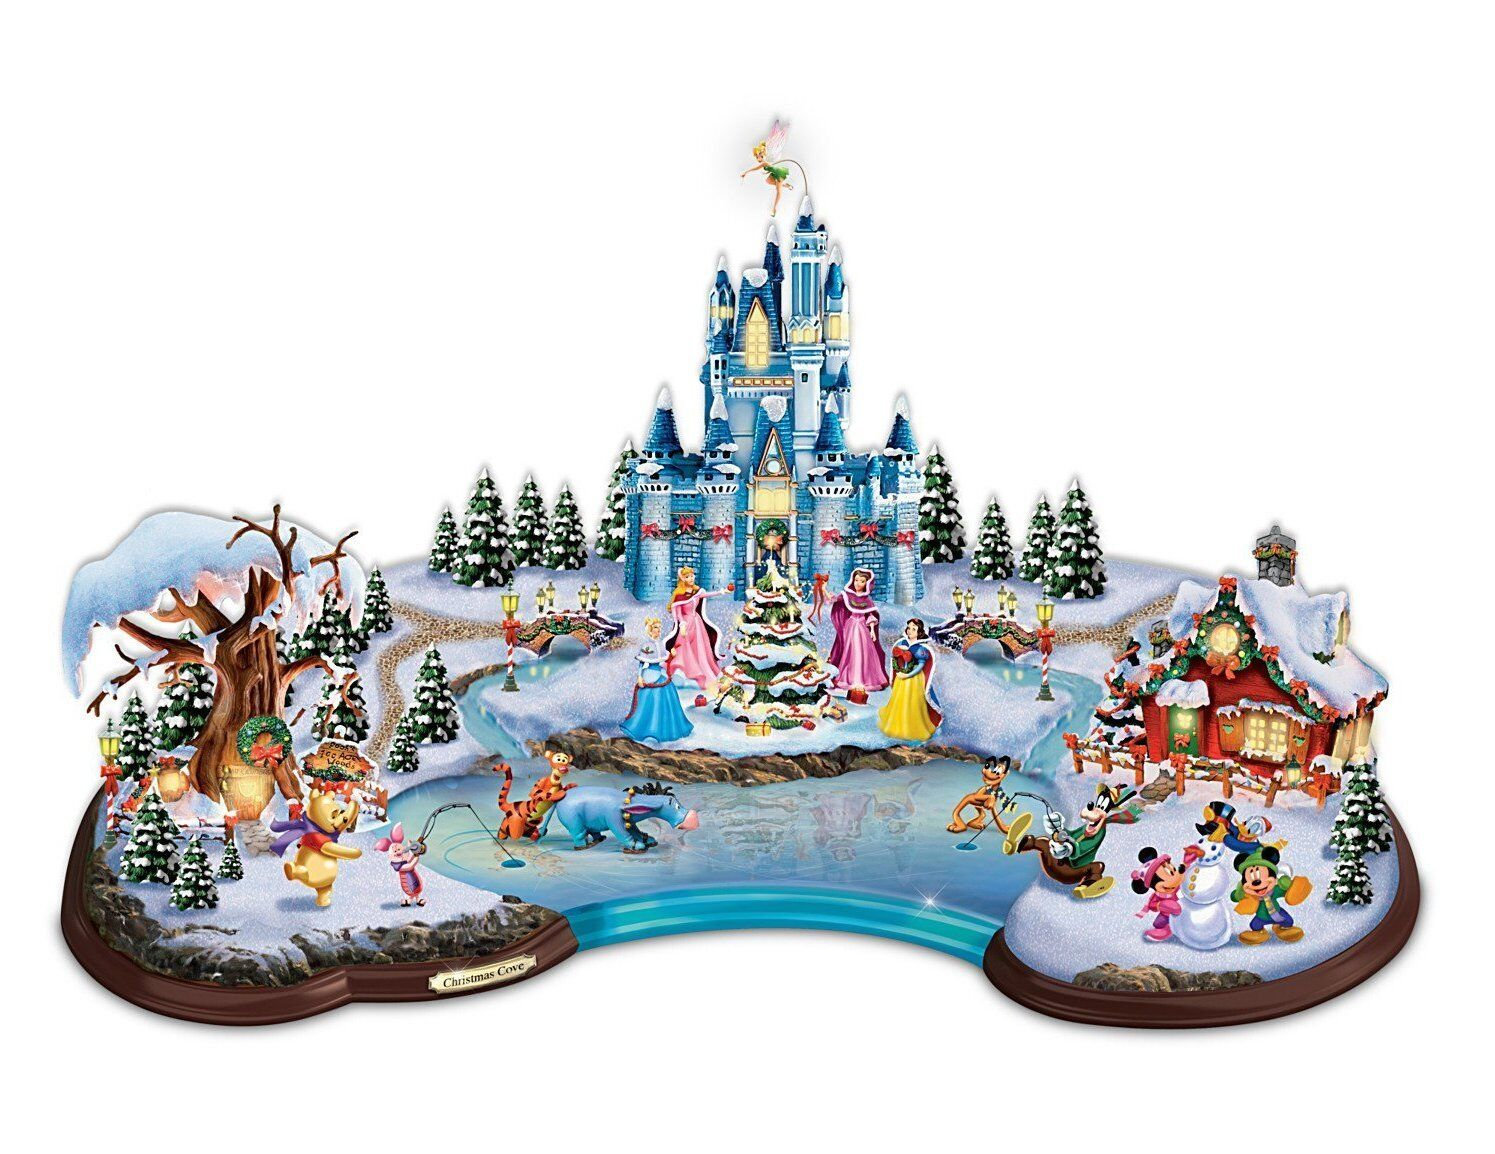 Disney Christmas Cove Illuminated Village Sculpture by Bradford ...